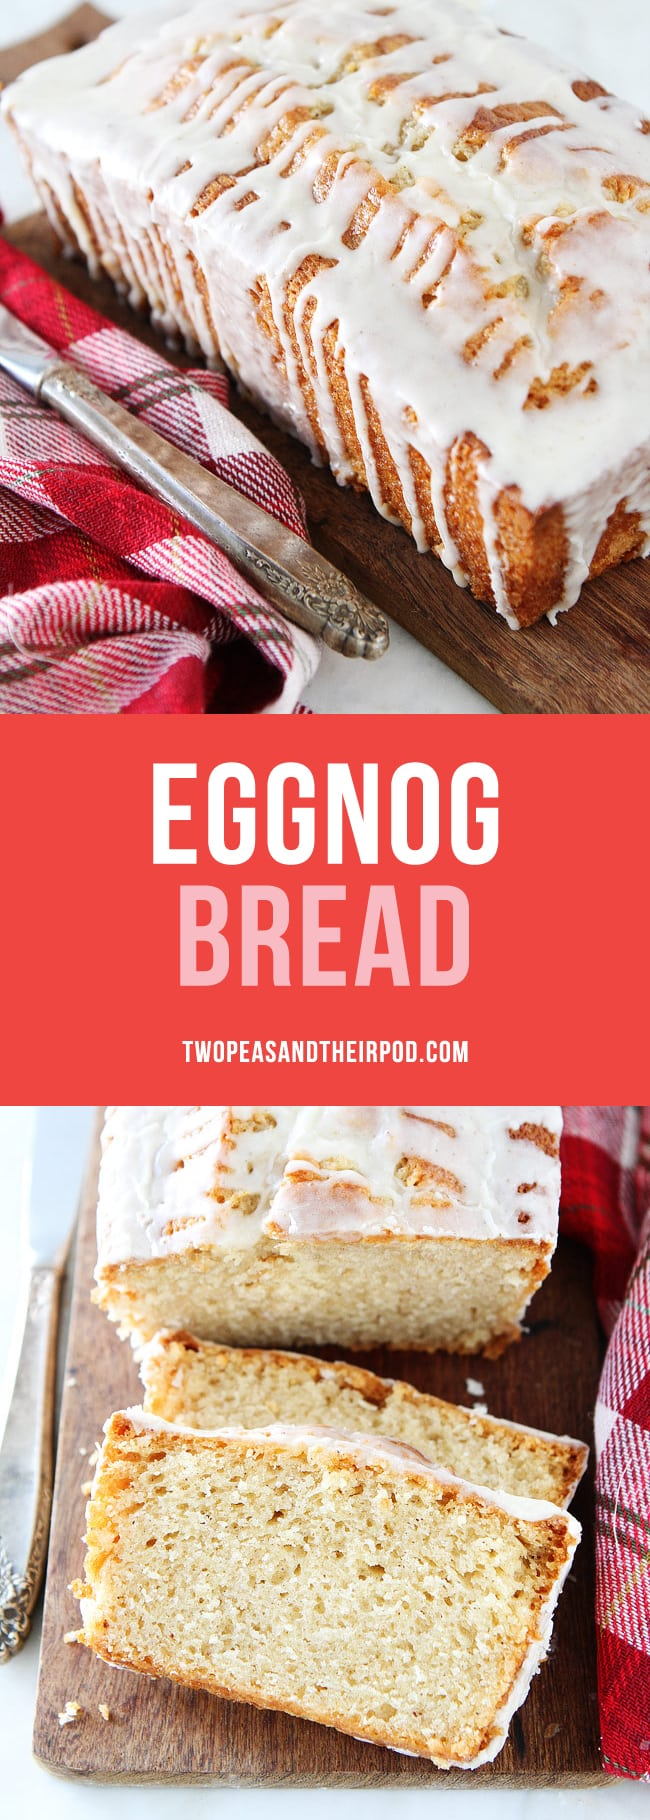 Eggnog Bread-this easy eggnog quick bread is a holiday favorite! Serve it for Christmas breakfast, brunch, or dessert! #eggnog #holidays #Christmas #bread